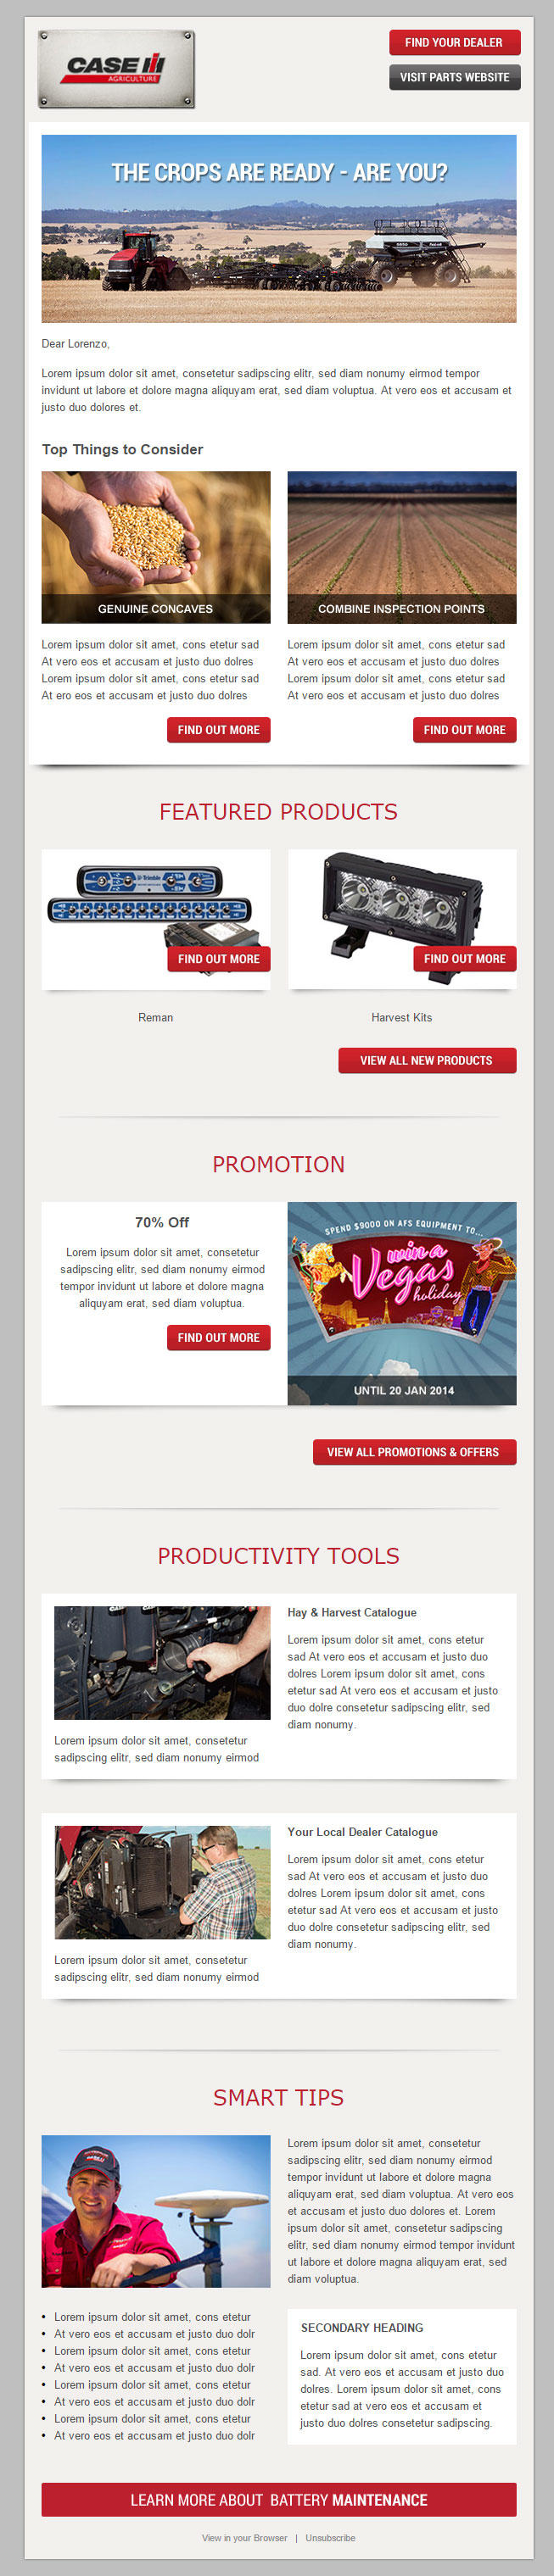 PSD to Responsive Email template for MailChimp or Any Email Marketing Platform by kunden - 61553